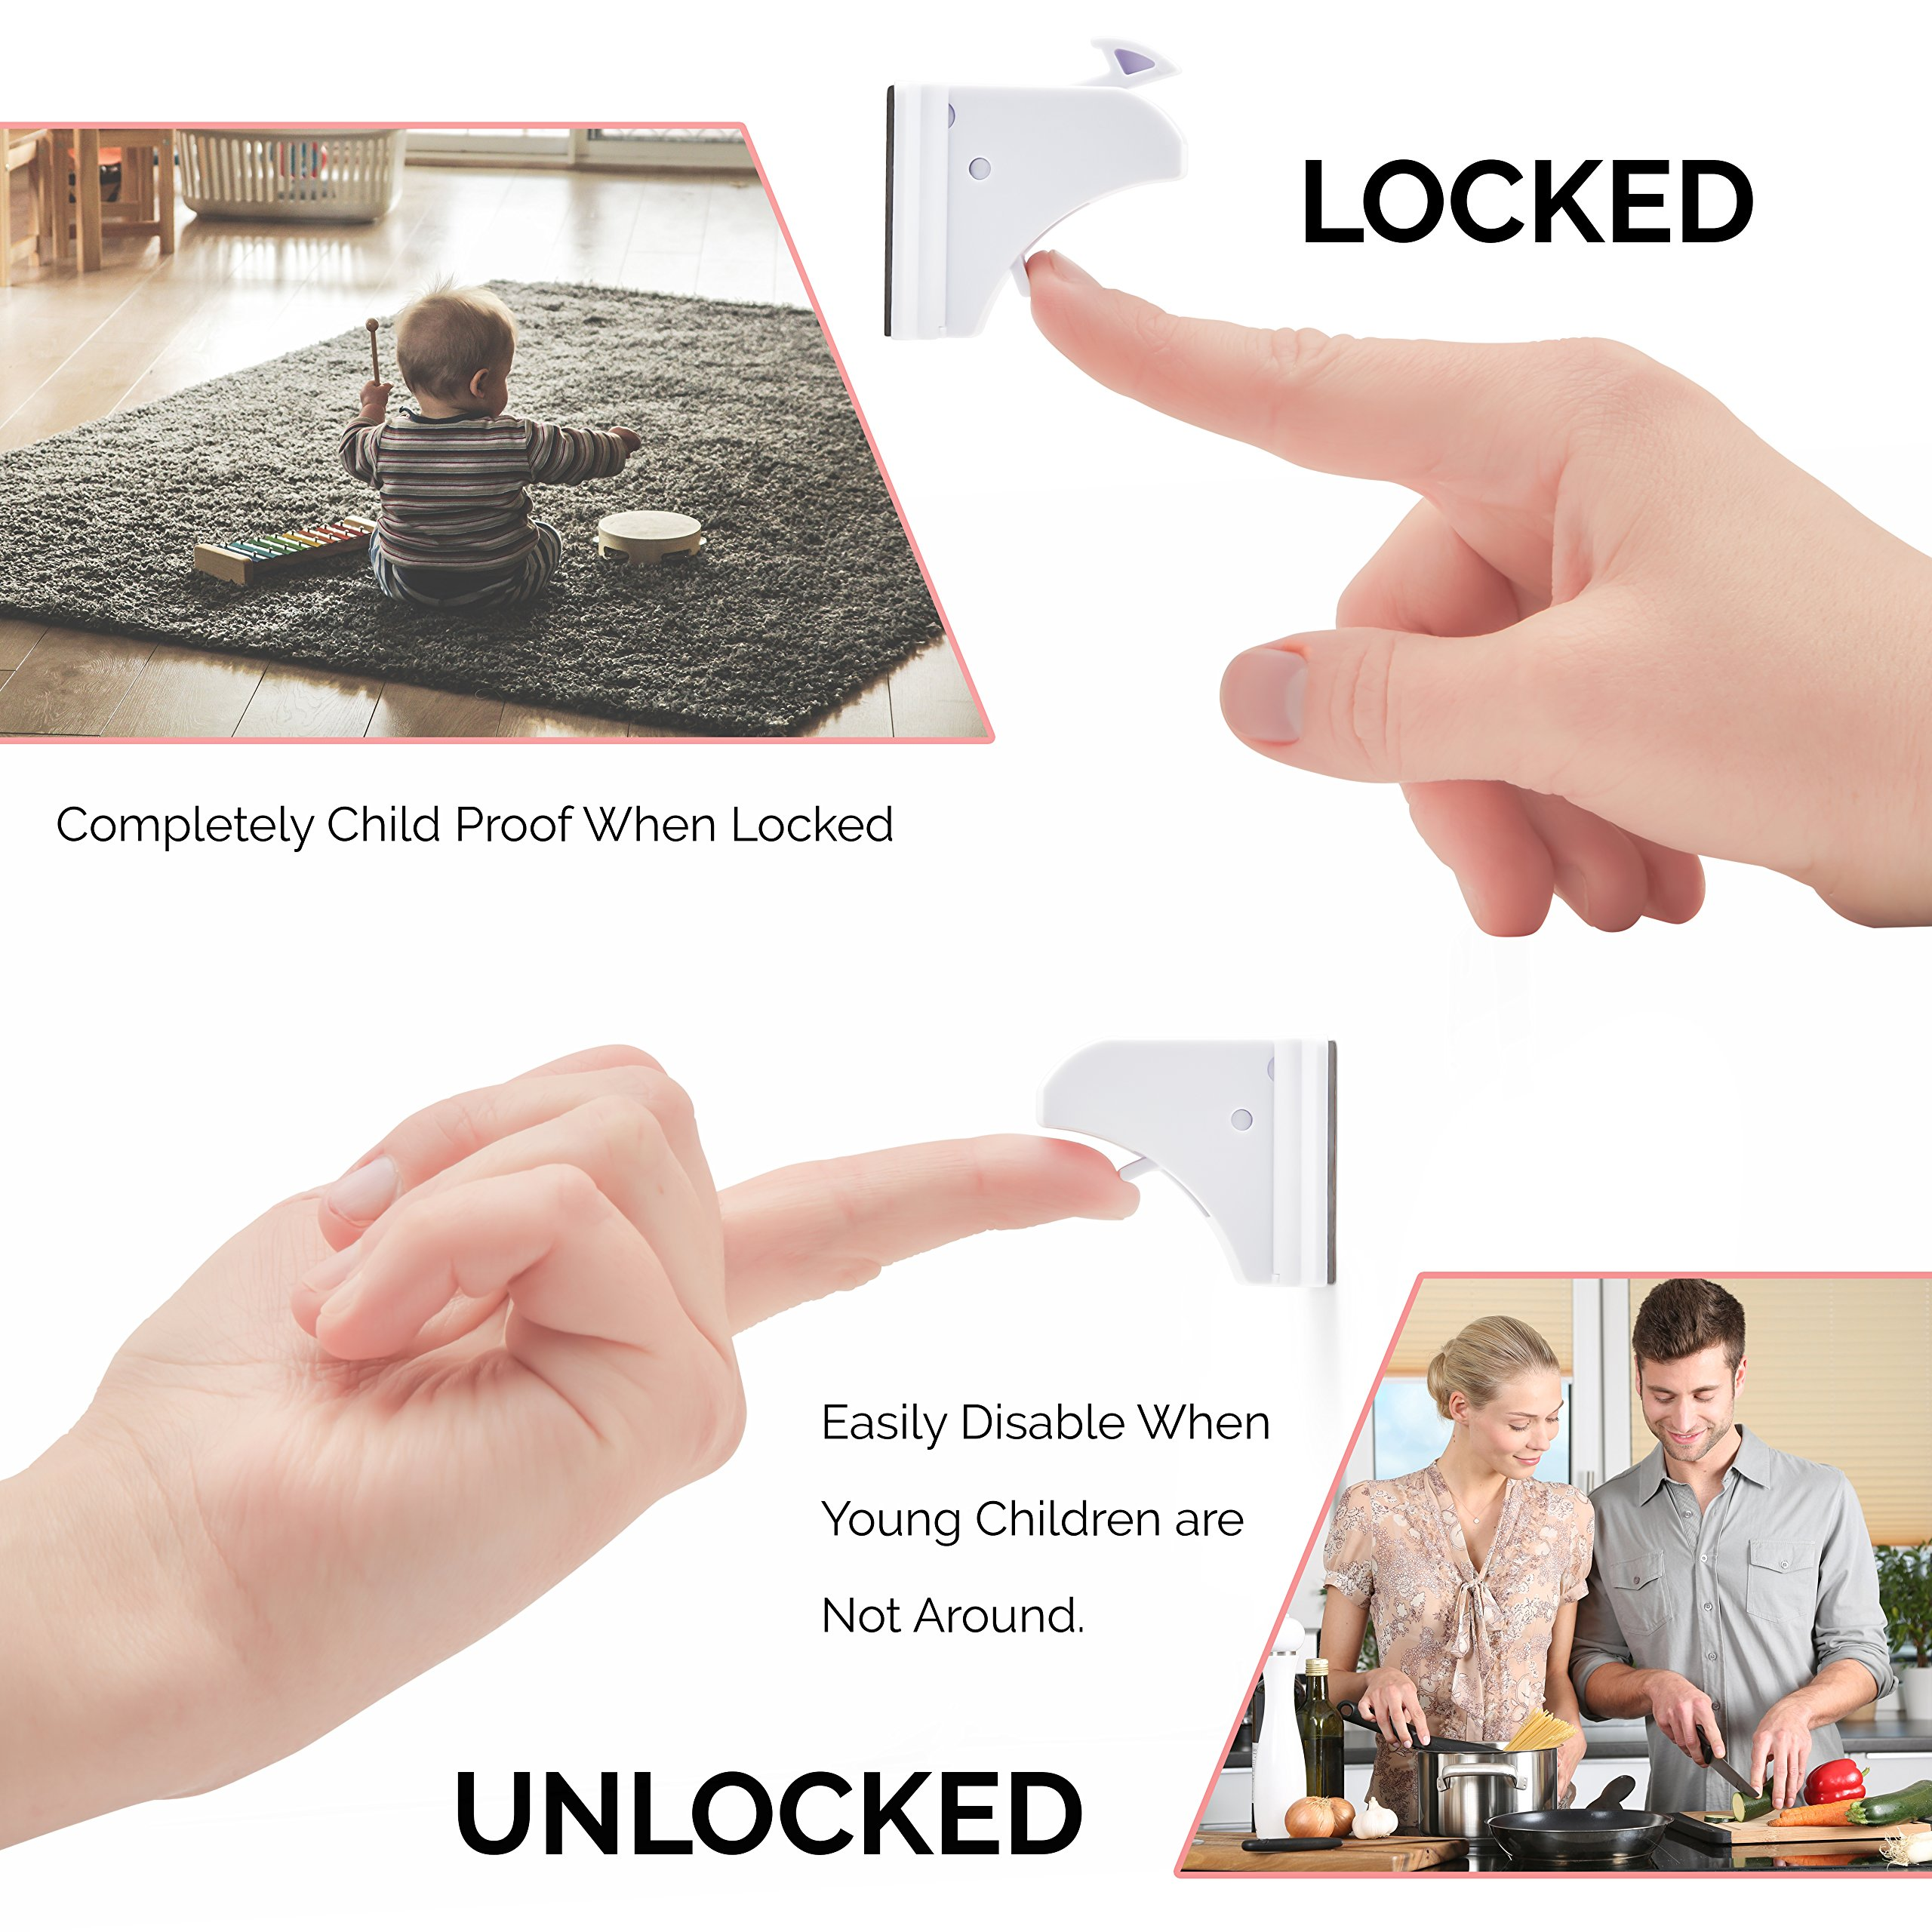 Baby & Child Proof Magnetic Safety Lock - Fits Your Drawer, Cabinet Or Door - 12 Locks And Latches + 2 Keys - Complete Home Proofing Kit - Drill Free - Extra Strong Adhesive - Easy & Fast Installation by BabyProof (Image #6)